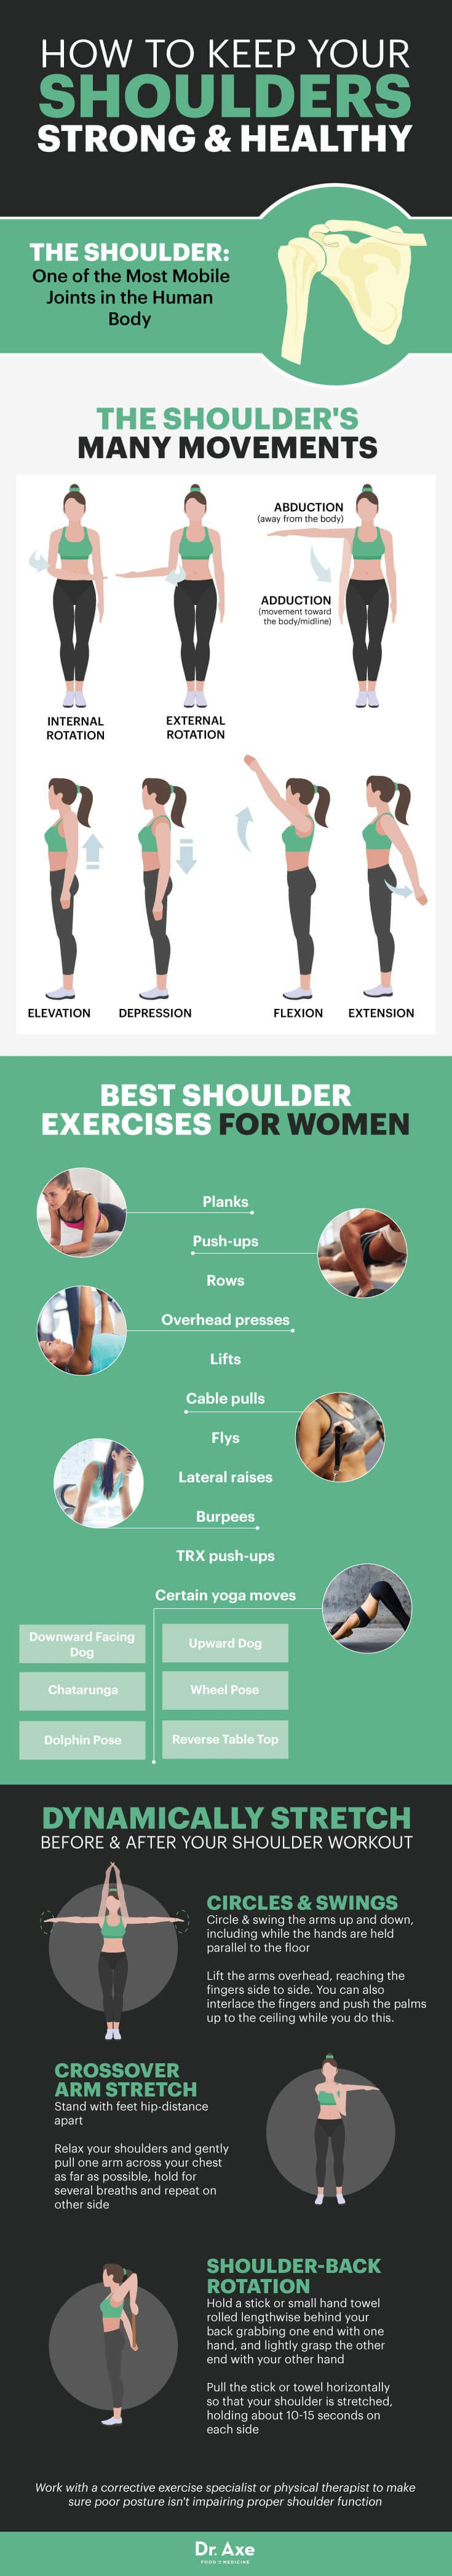 A List of the Best Shoulder Workouts for Women - Dr. Axe